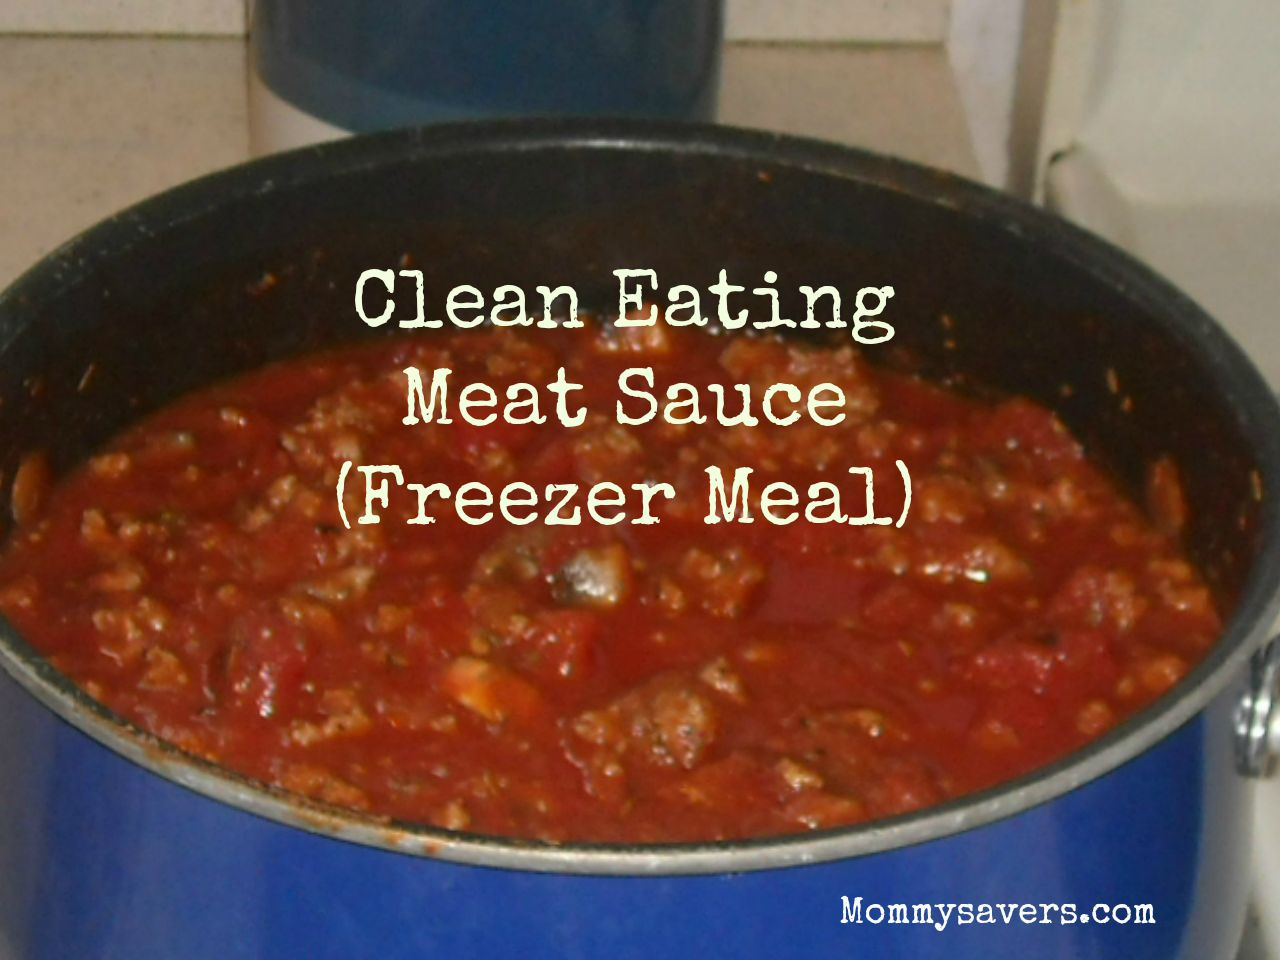 Clean Eating Meat Sauce